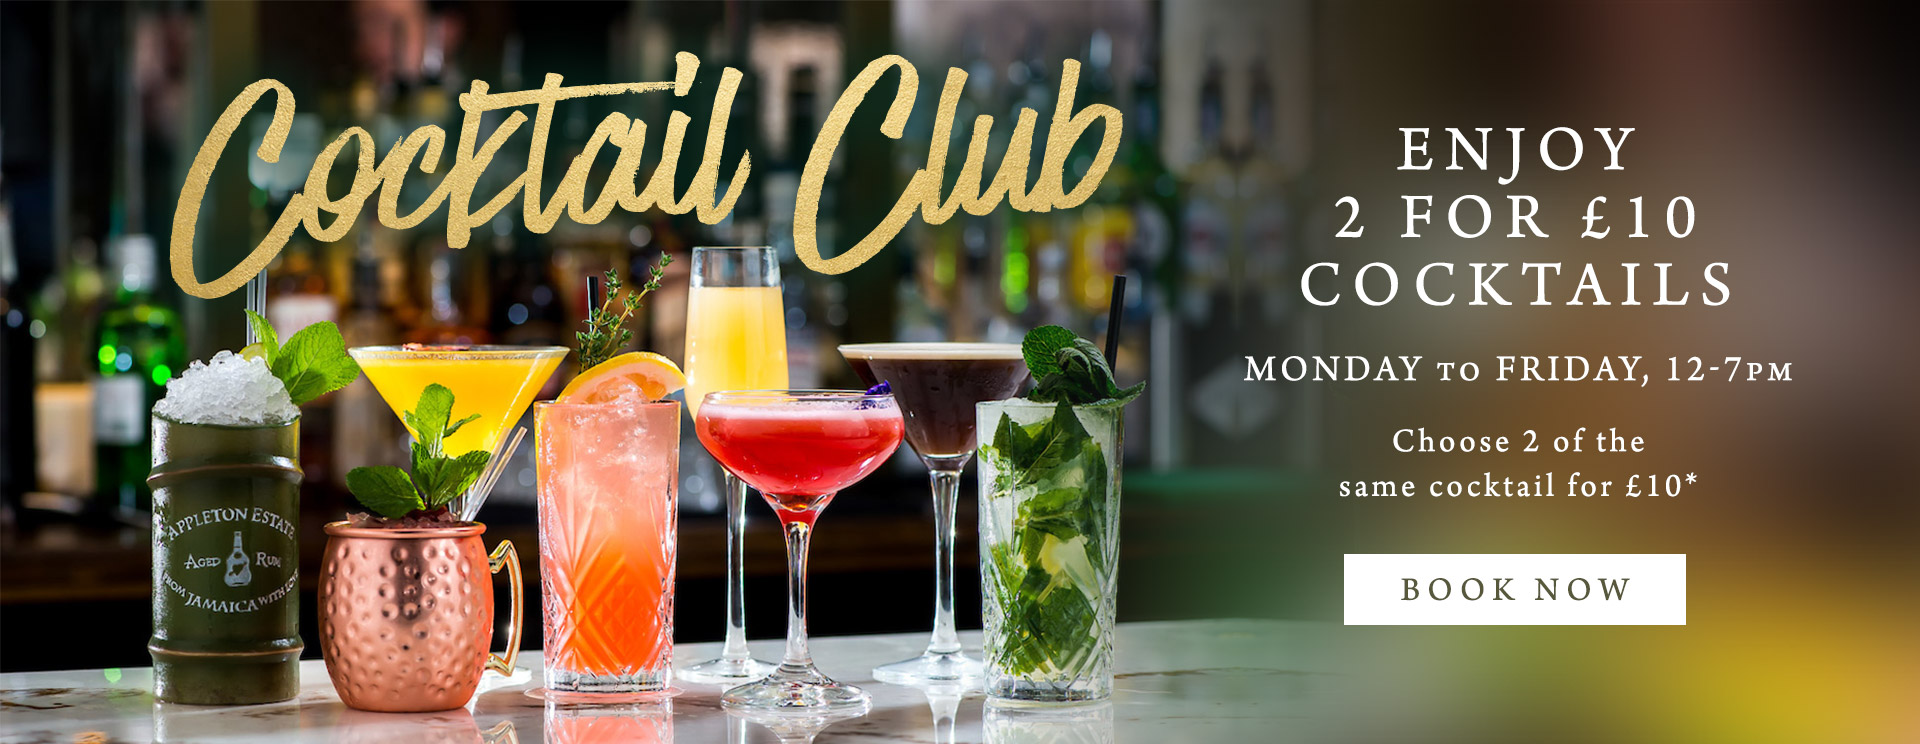 2 for £10 cocktails at The Minnow